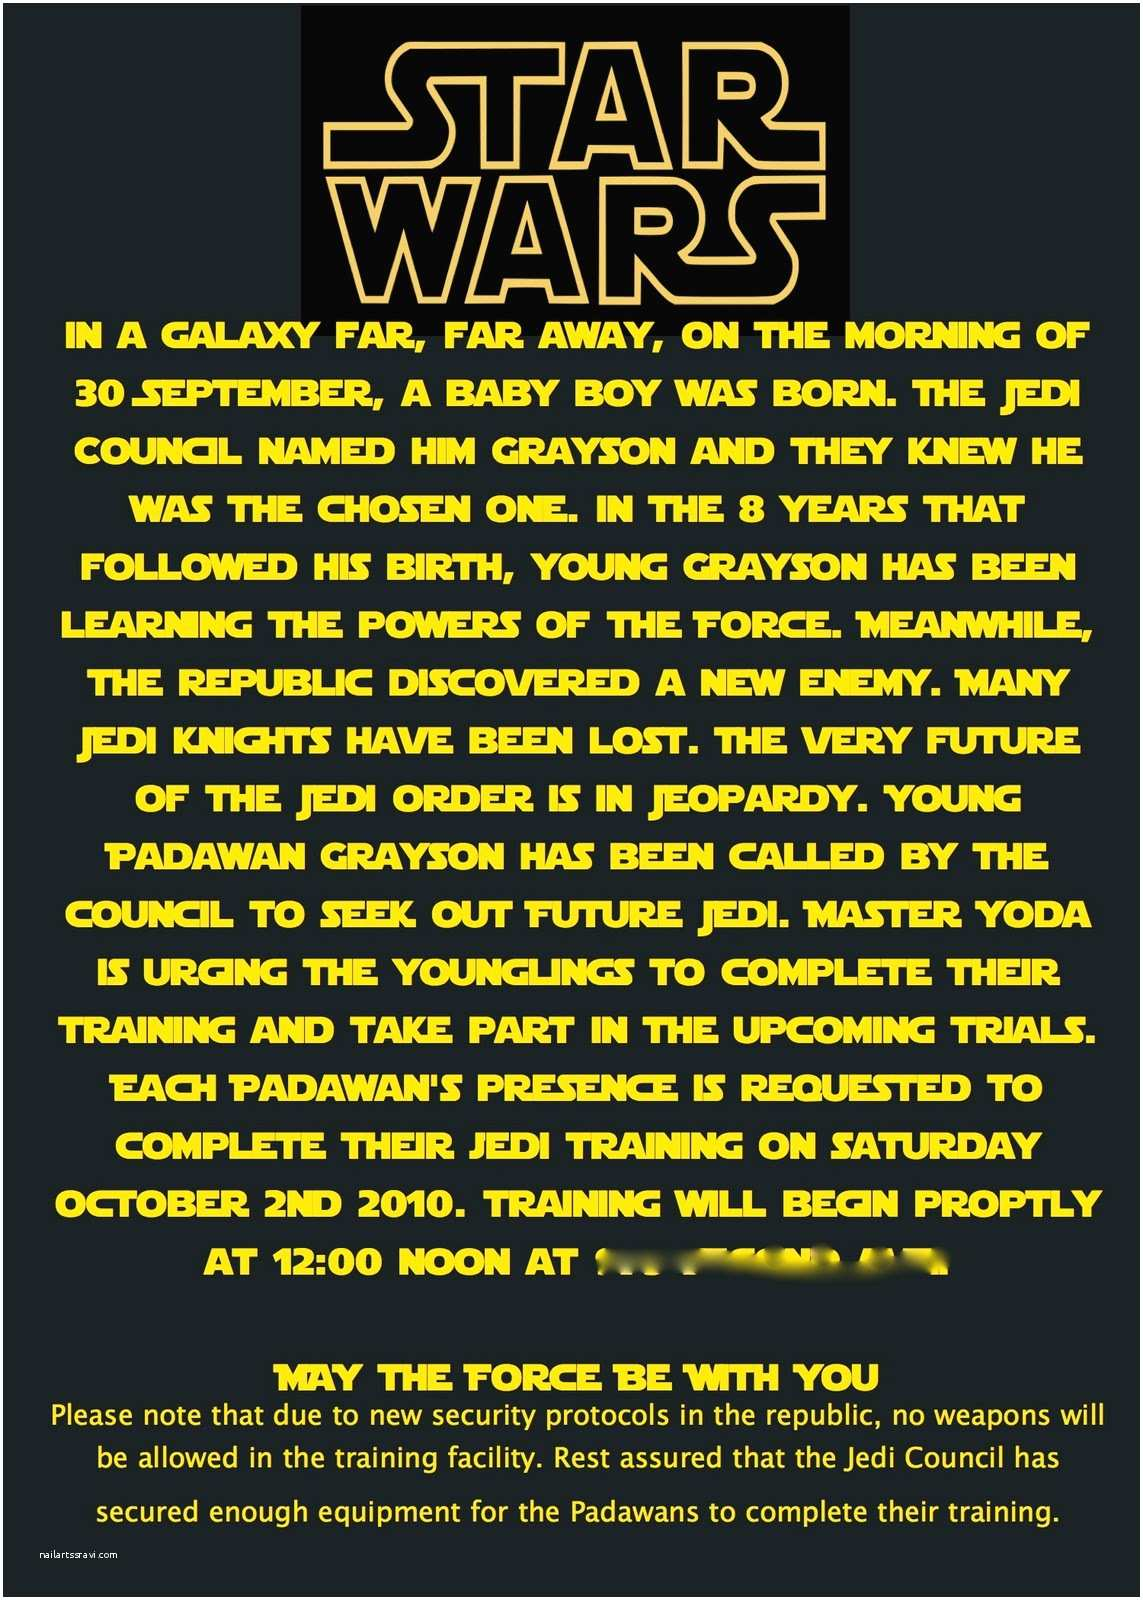 Star Wars Party Invitations at Second Street Star Wars Party What I Did